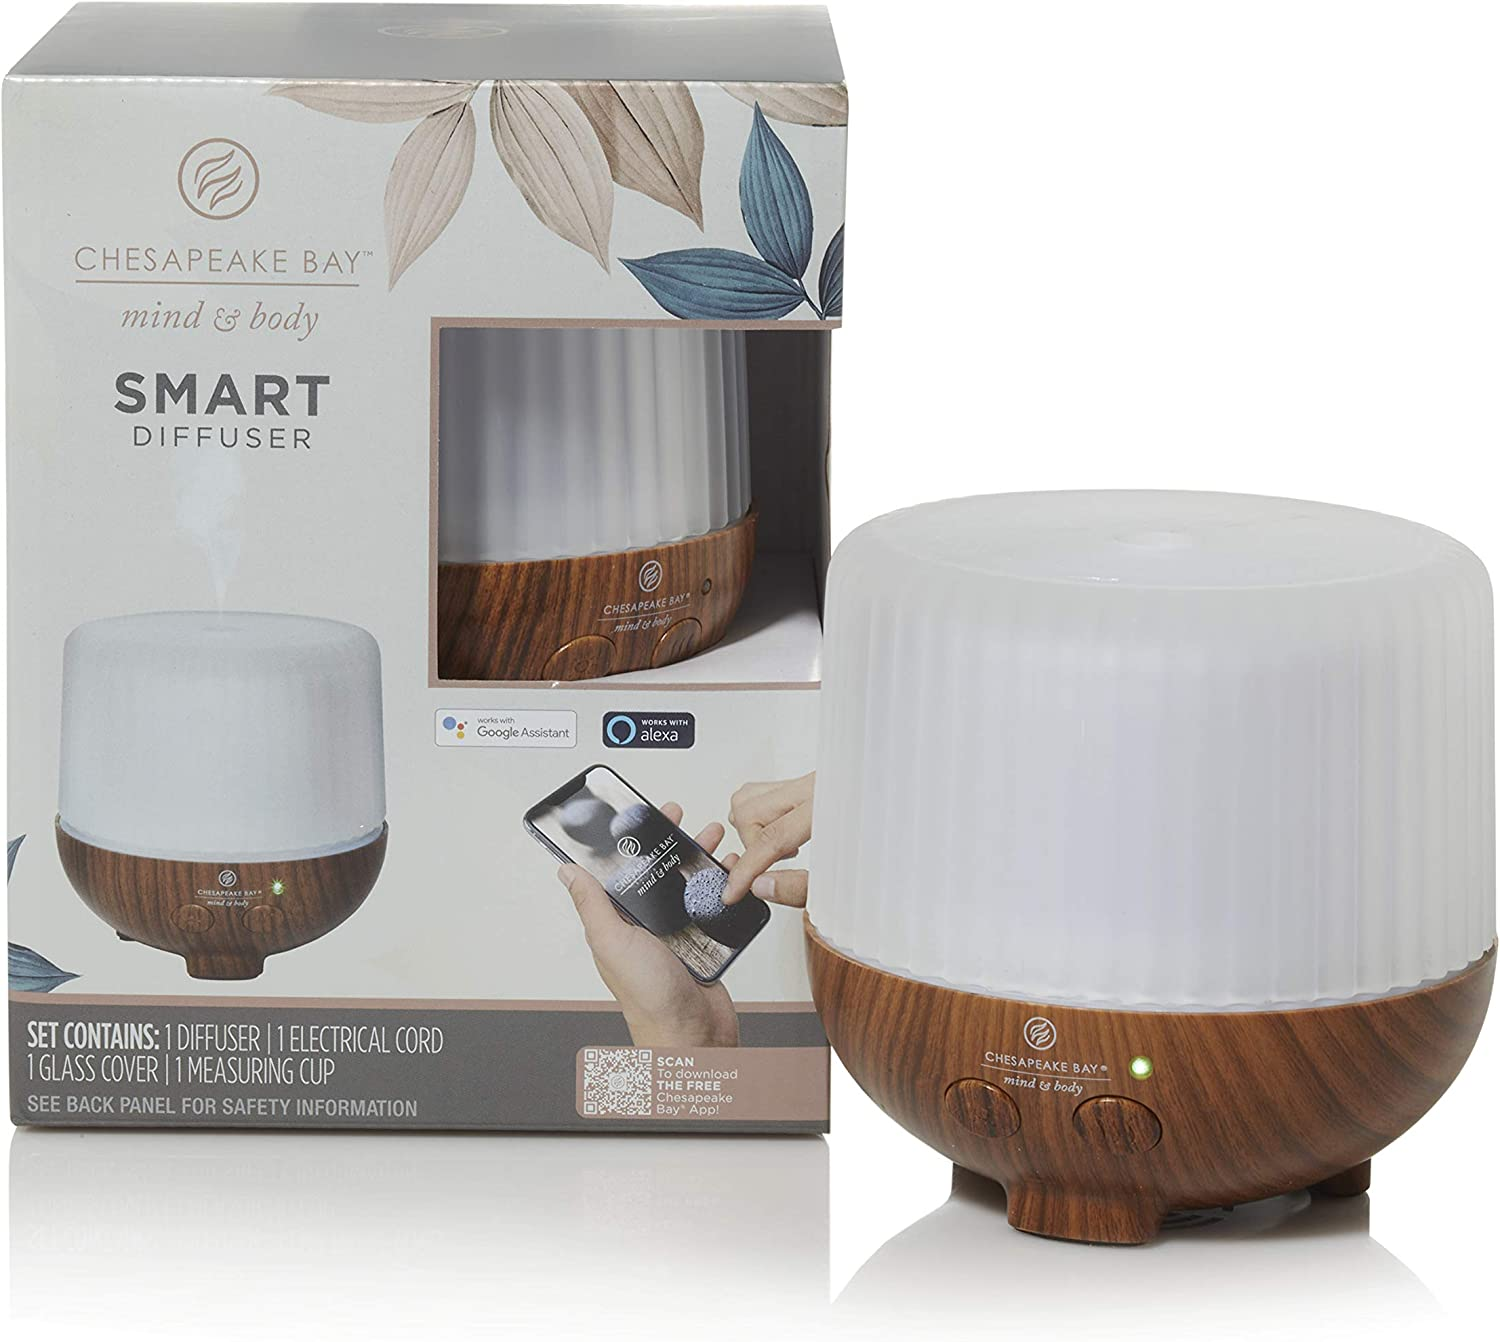 Chesapeake Bay Candle Mind & Body Smart Diffuser, Brown, Works with Alexa